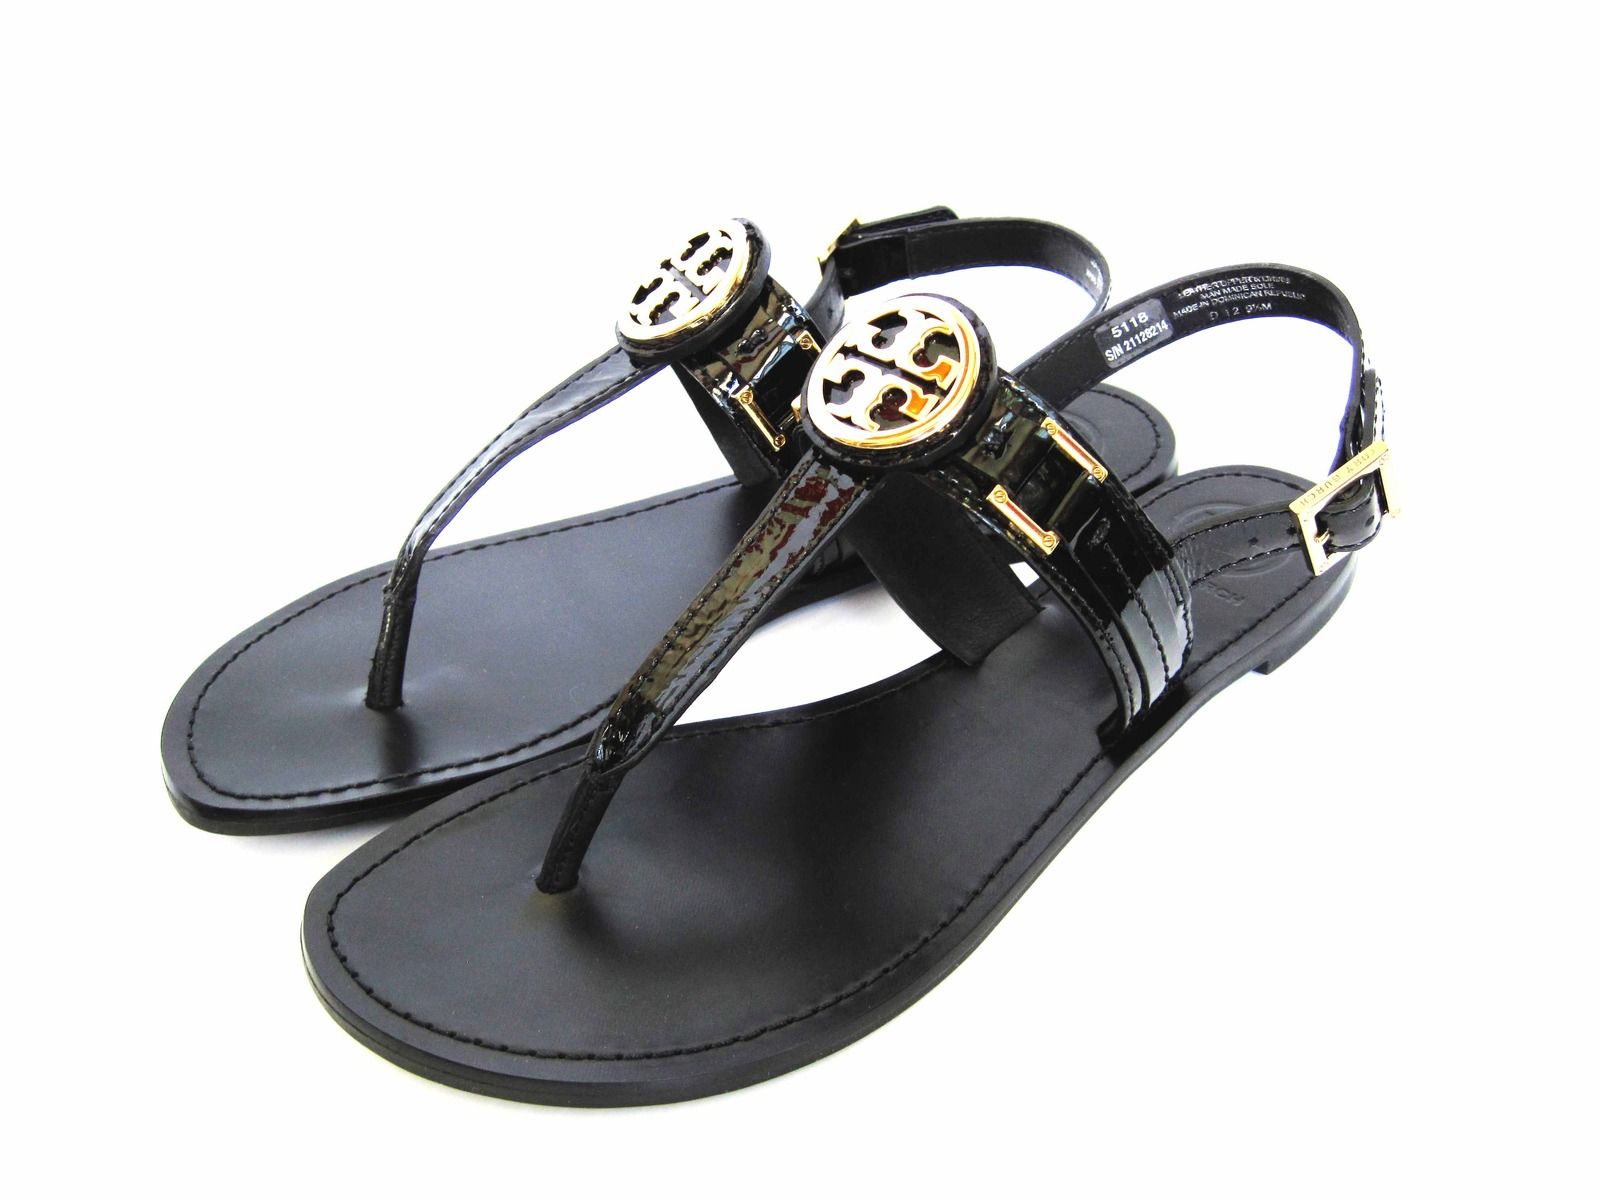 5bb9760ce47a Tory Burch Patent Cassia Gold Logo Sandal and 44 similar items. Img 3467